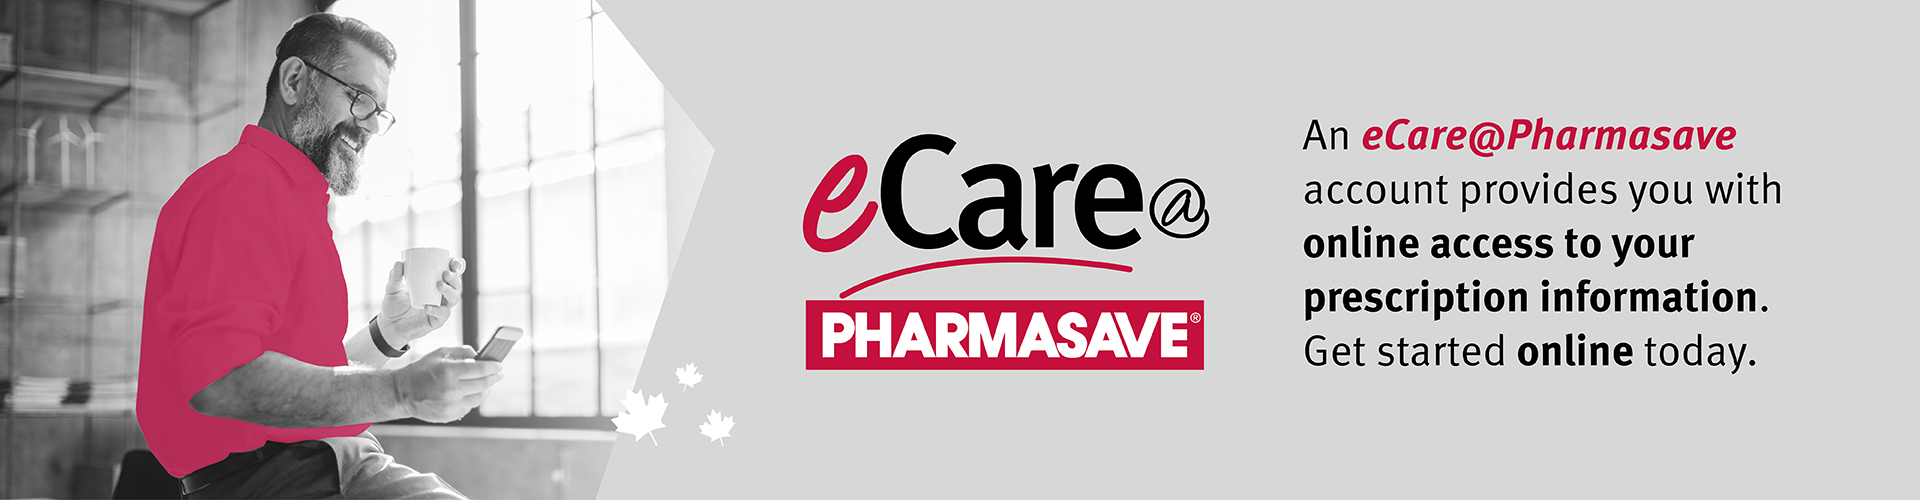 Download the eCare@Pharmasave App to manage your medications